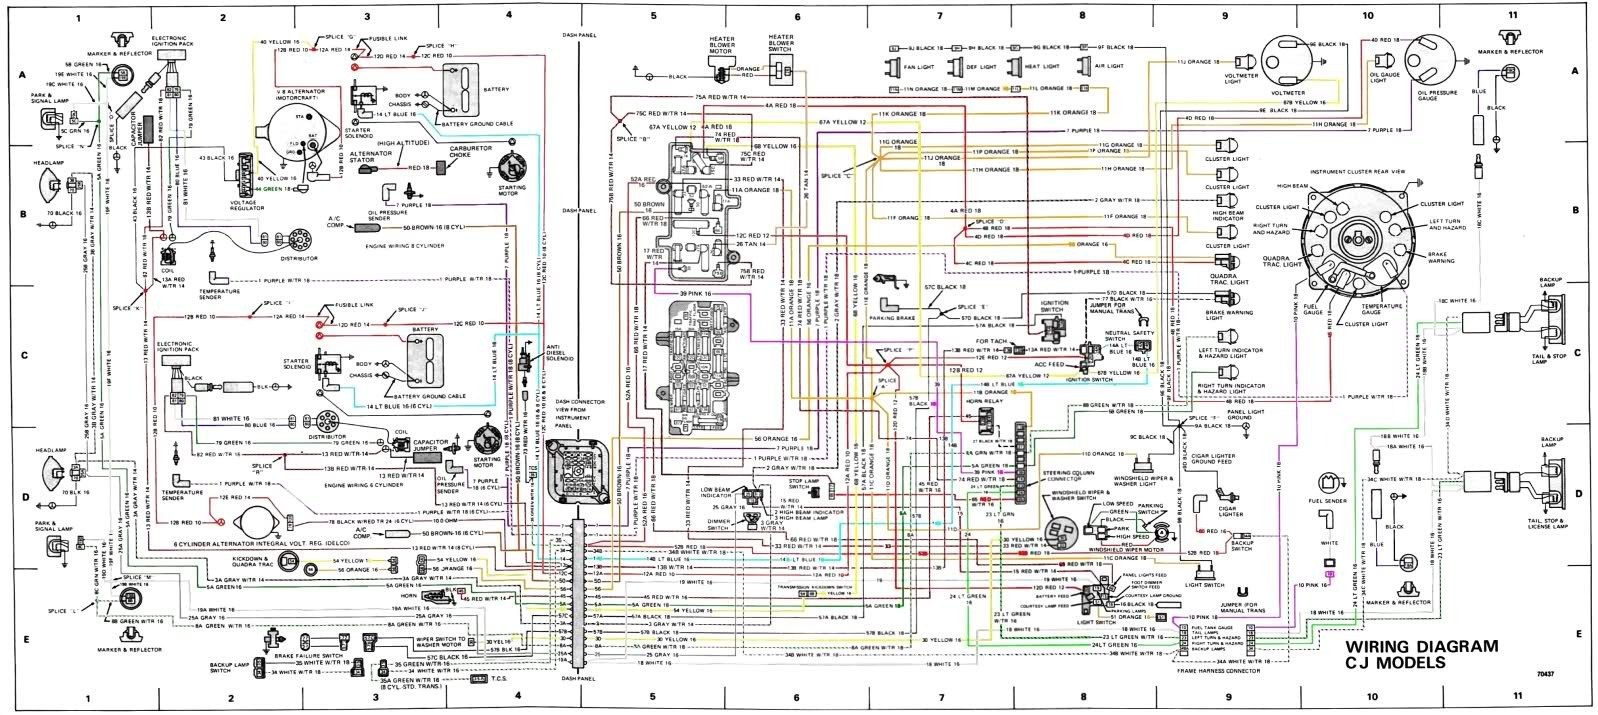 hight resolution of 1974 lincoln continental wiring diagram data wiring diagram1974 lincoln continental wiring diagram wiring diagram toolbox 1974